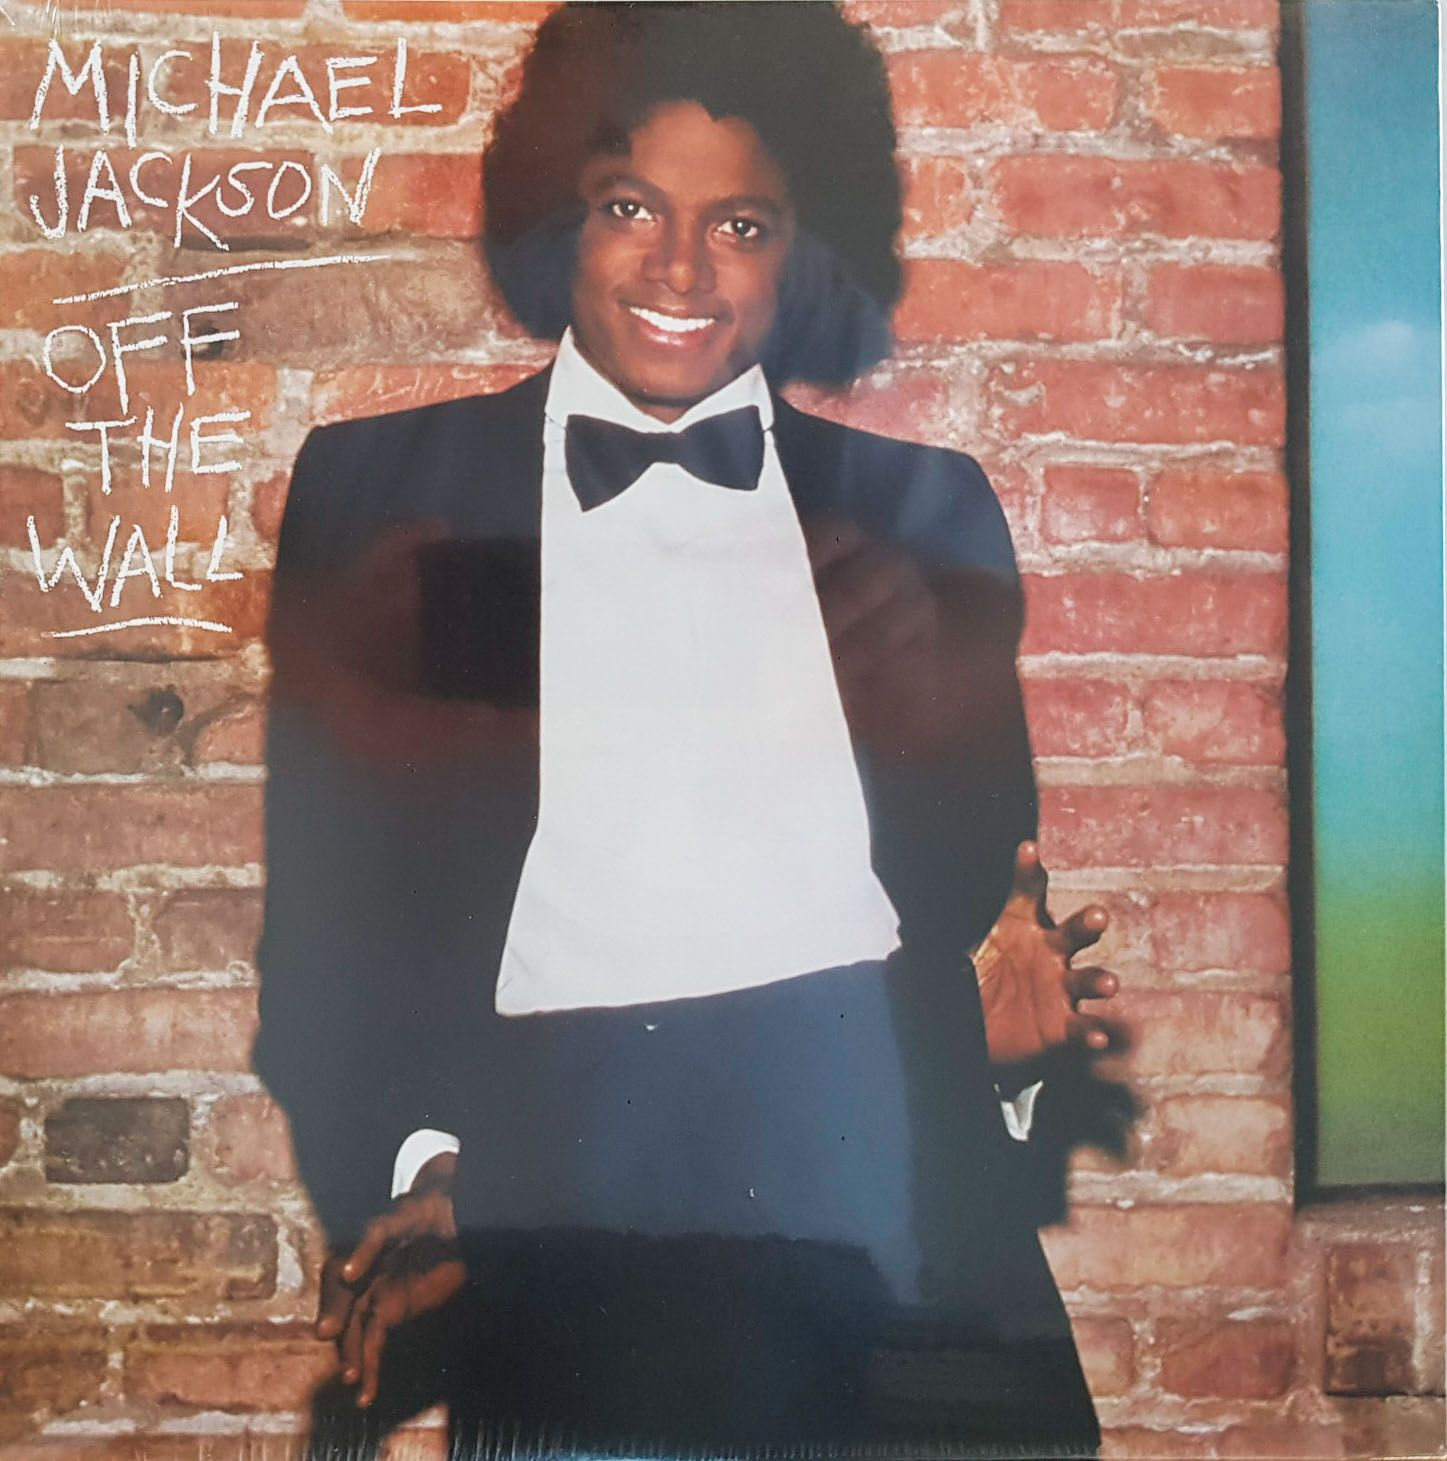 Lp Vinil Michael Jackson Off The Wall